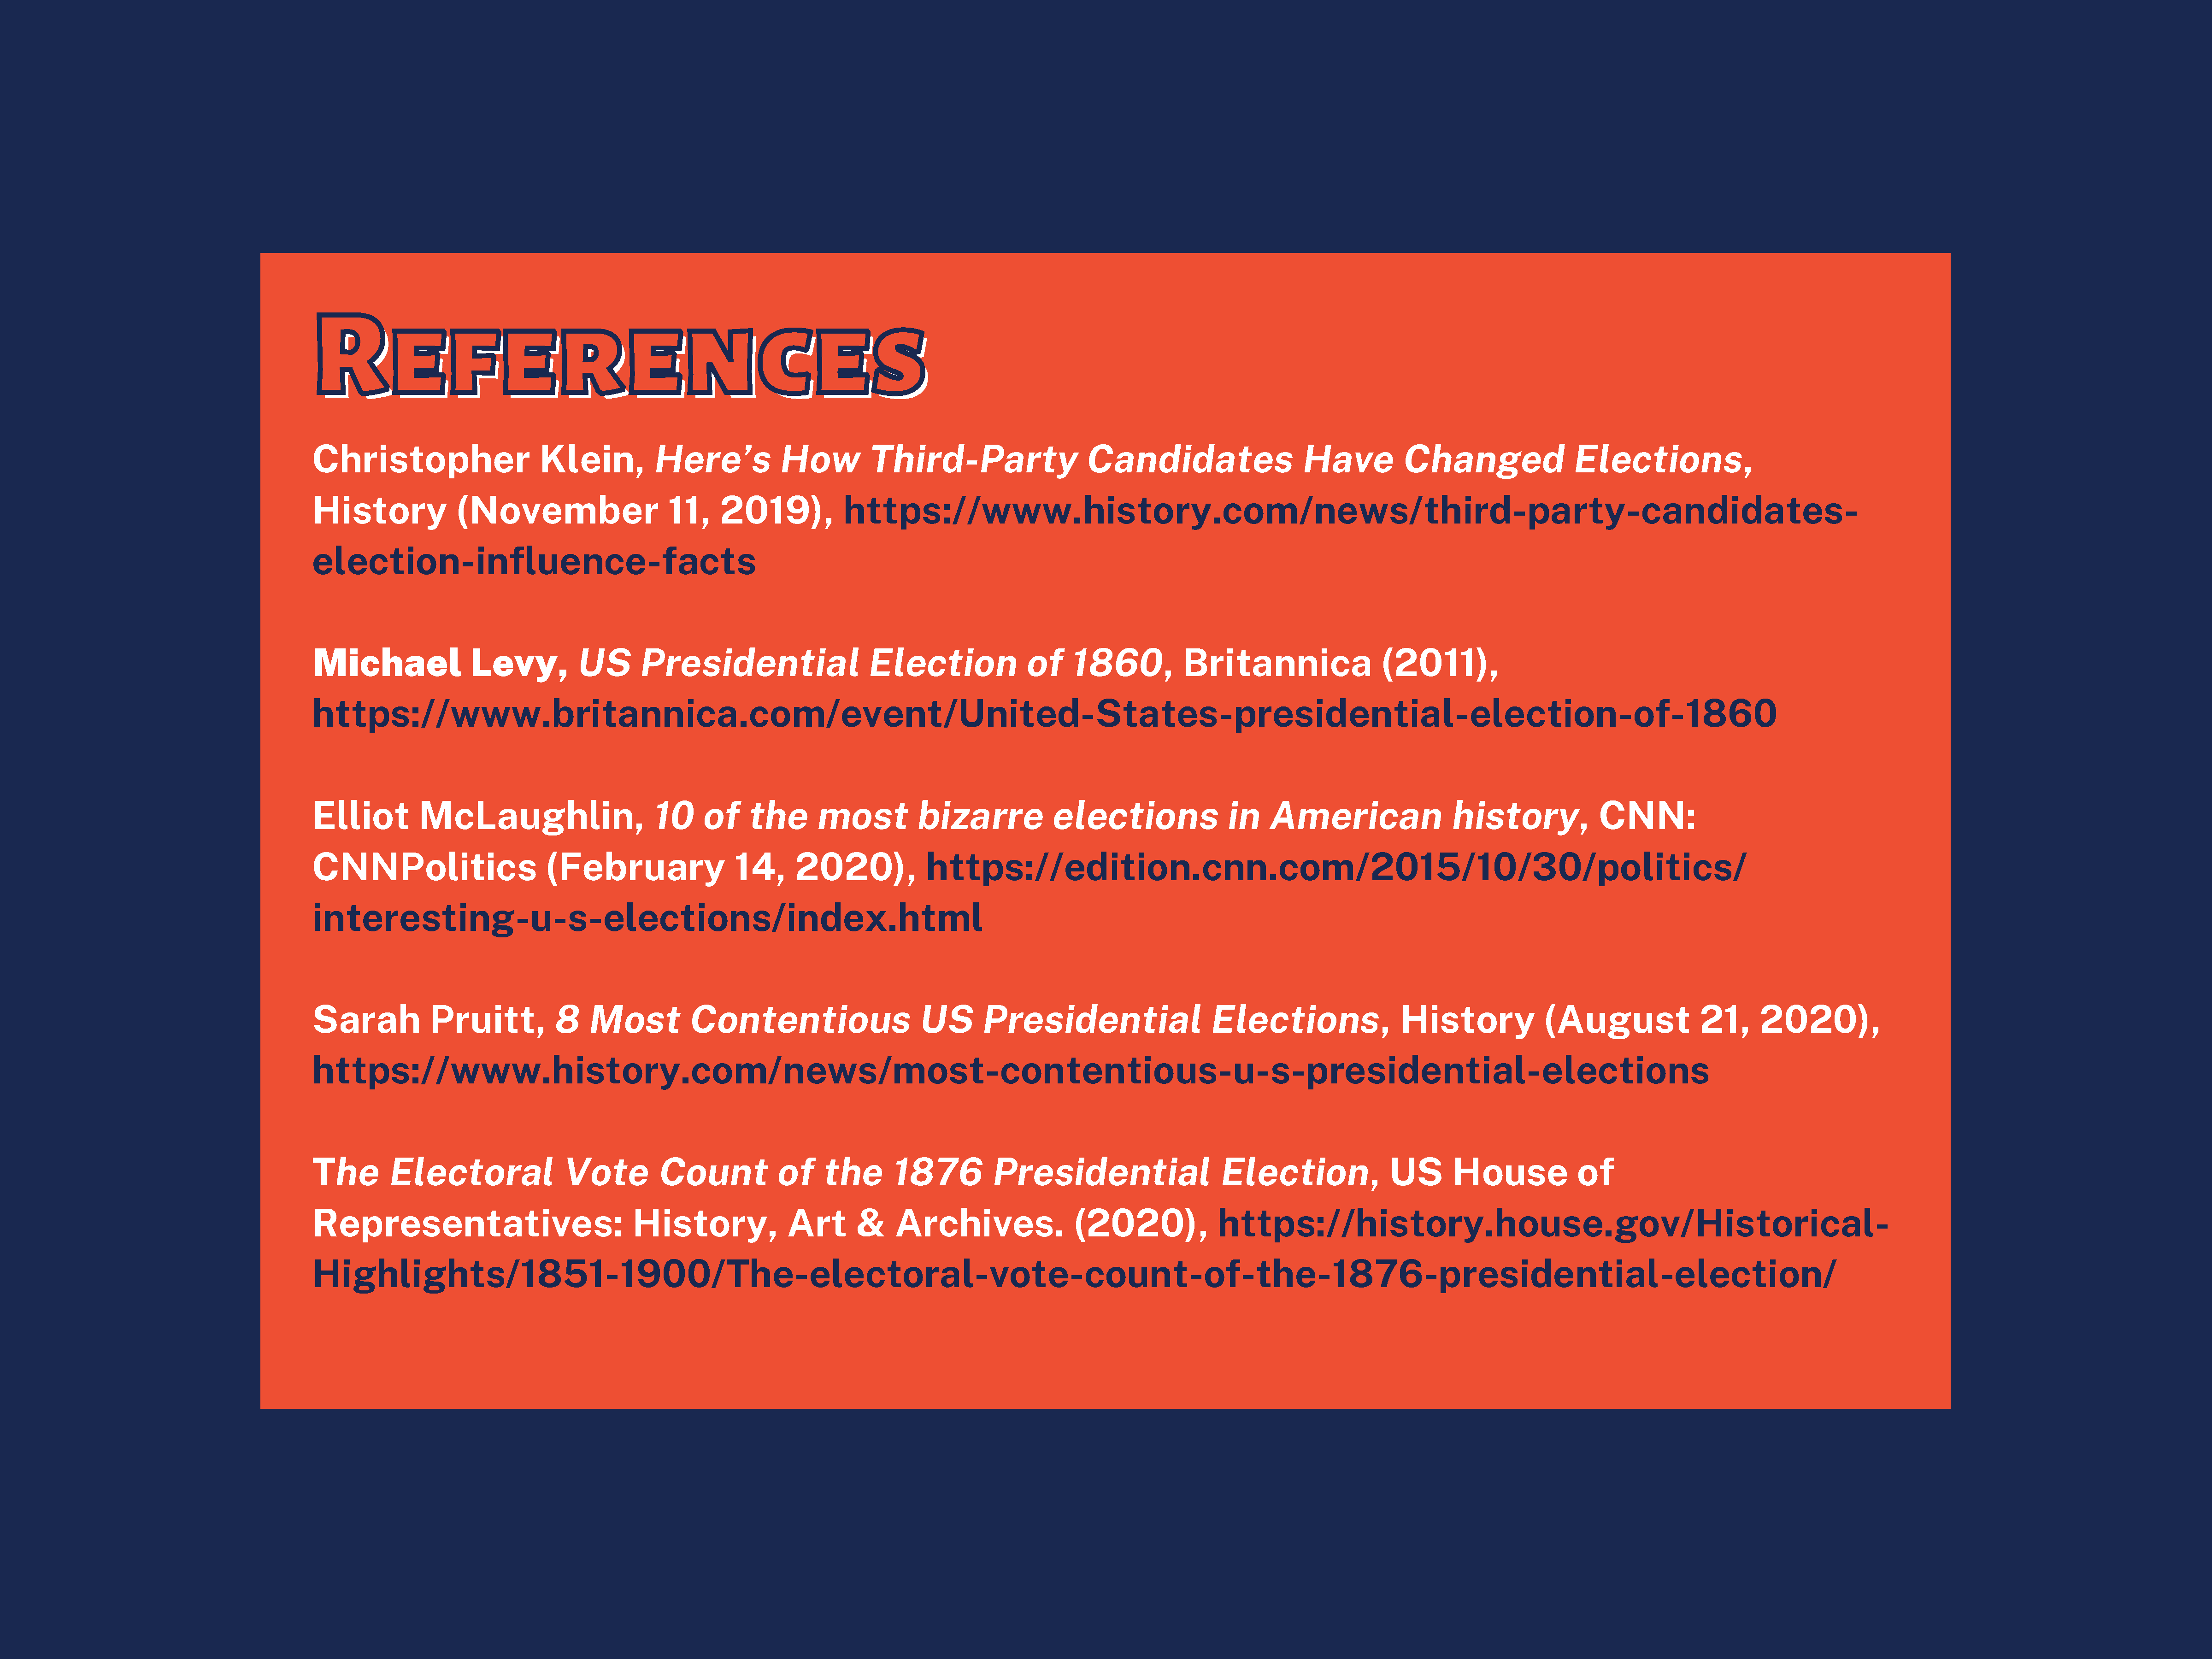 References Christopher Klein, Here's How Third-Party Candidates Have Changed Elections, History (November 11, 2019), https://www.history.com/news/third-party-candidateselection- influence-facts Michael Levy, US Presidential Election of 1860, Britannica (2011), https://www.britannica.com/event/United-States-presidential-election-of-1860 Elliot McLaughlin, 10 of the most bizarre elections in American history, CNN: CNNPolitics (February 14, 2020), https://edition.cnn.com/2015/10/30/politics/ interesting-u-s-elections/index.html Sarah Pruitt, 8 Most Contentious US Presidential Elections, History (August 21, 2020), https://www.history.com/news/most-contentious-u-s-presidential-elections The Electoral Vote Count of the 1876 Presidential Election, US House of Representatives: History, Art & Archives. (2020), https://history.house.gov/Historical- Highlights/1851-1900/The-electoral-vote-count-of-the-1876-presidential-election/